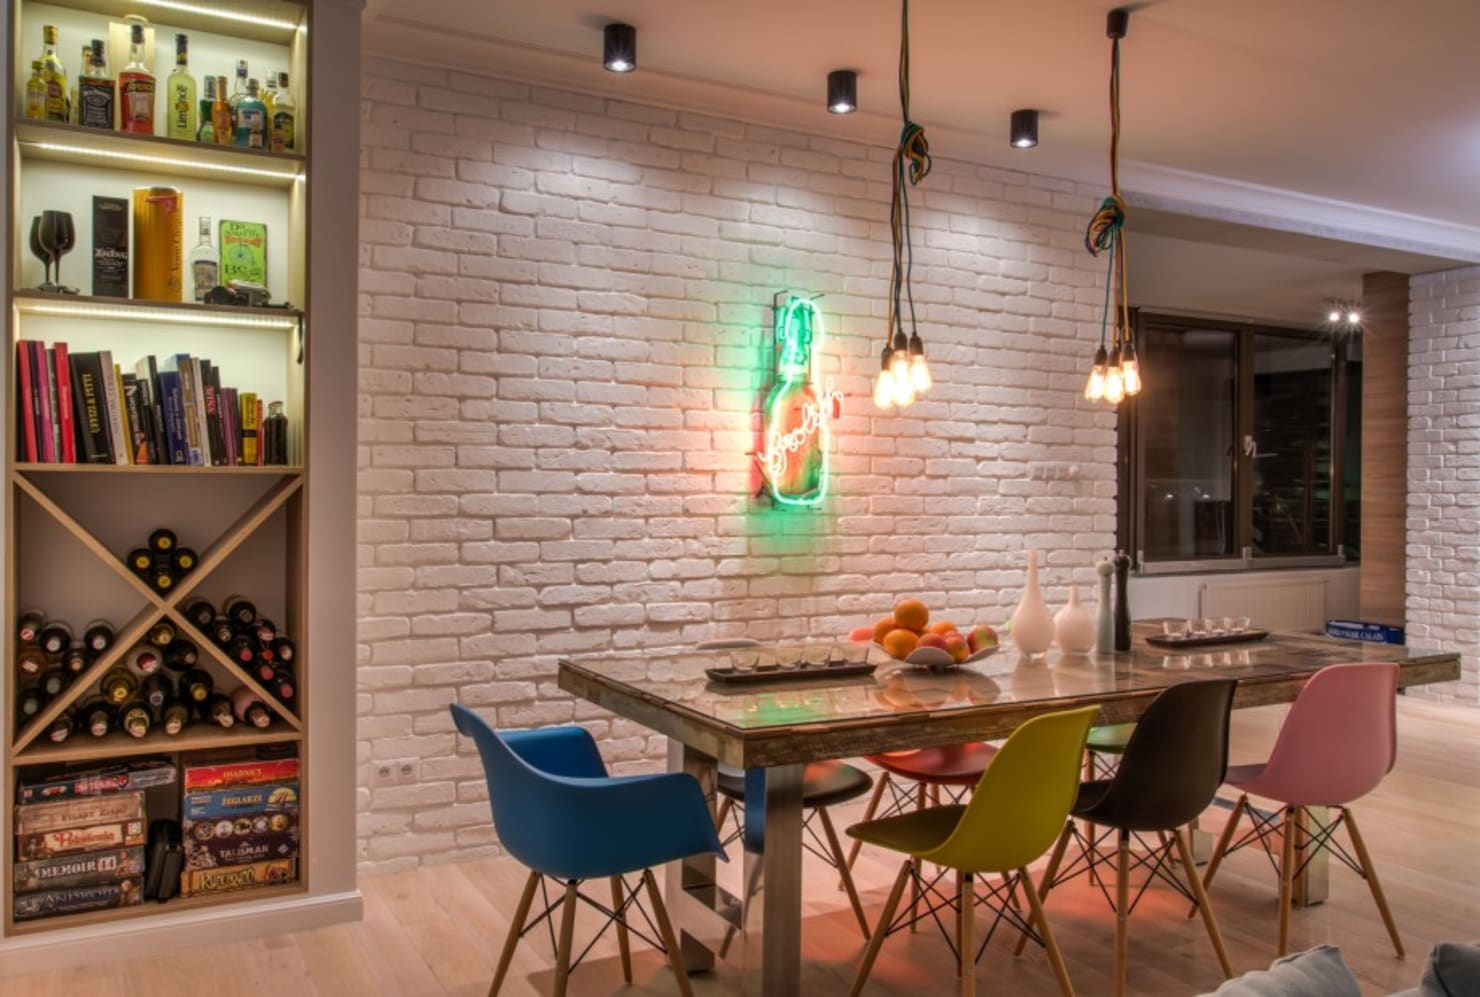 5 amazing apartments you have to see!